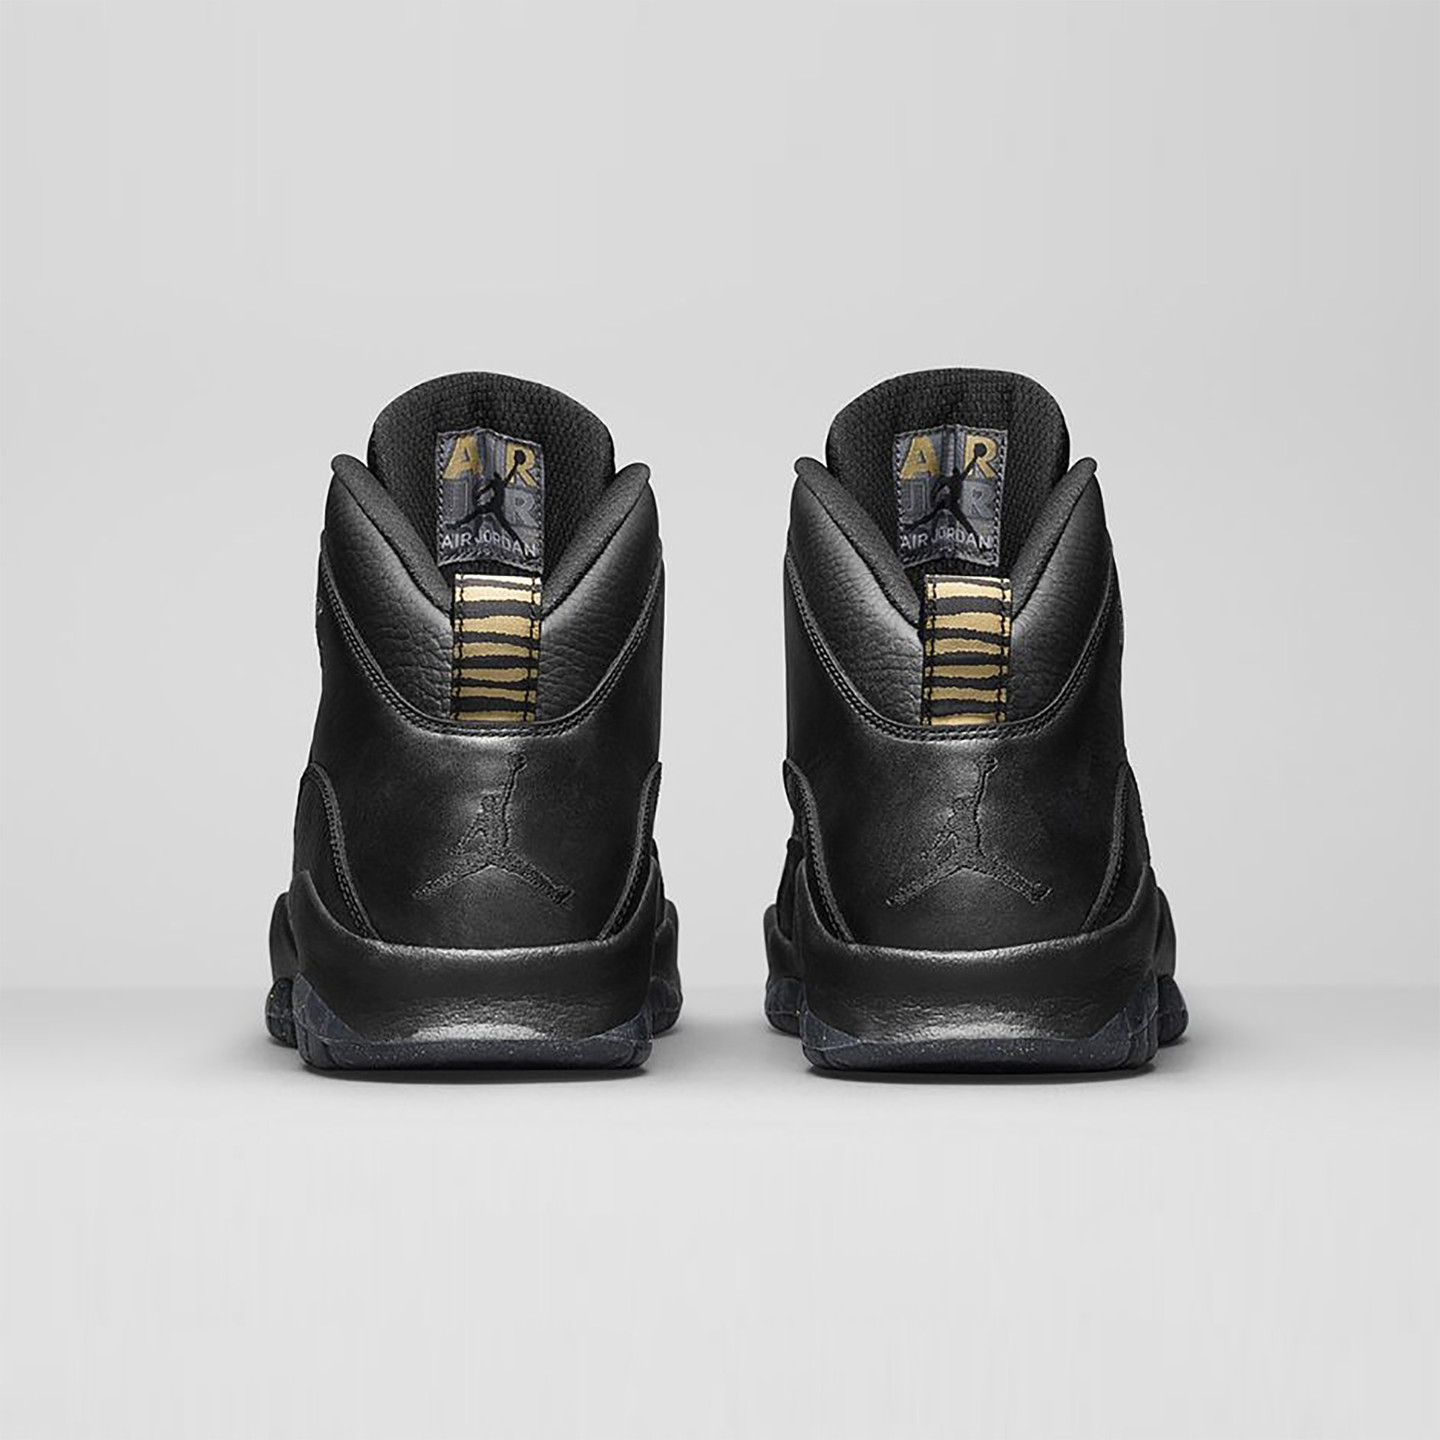 Jordan Air Jordan 10 Retro GS 'NYC' Black / Metallic Gold 310806-012-36.5